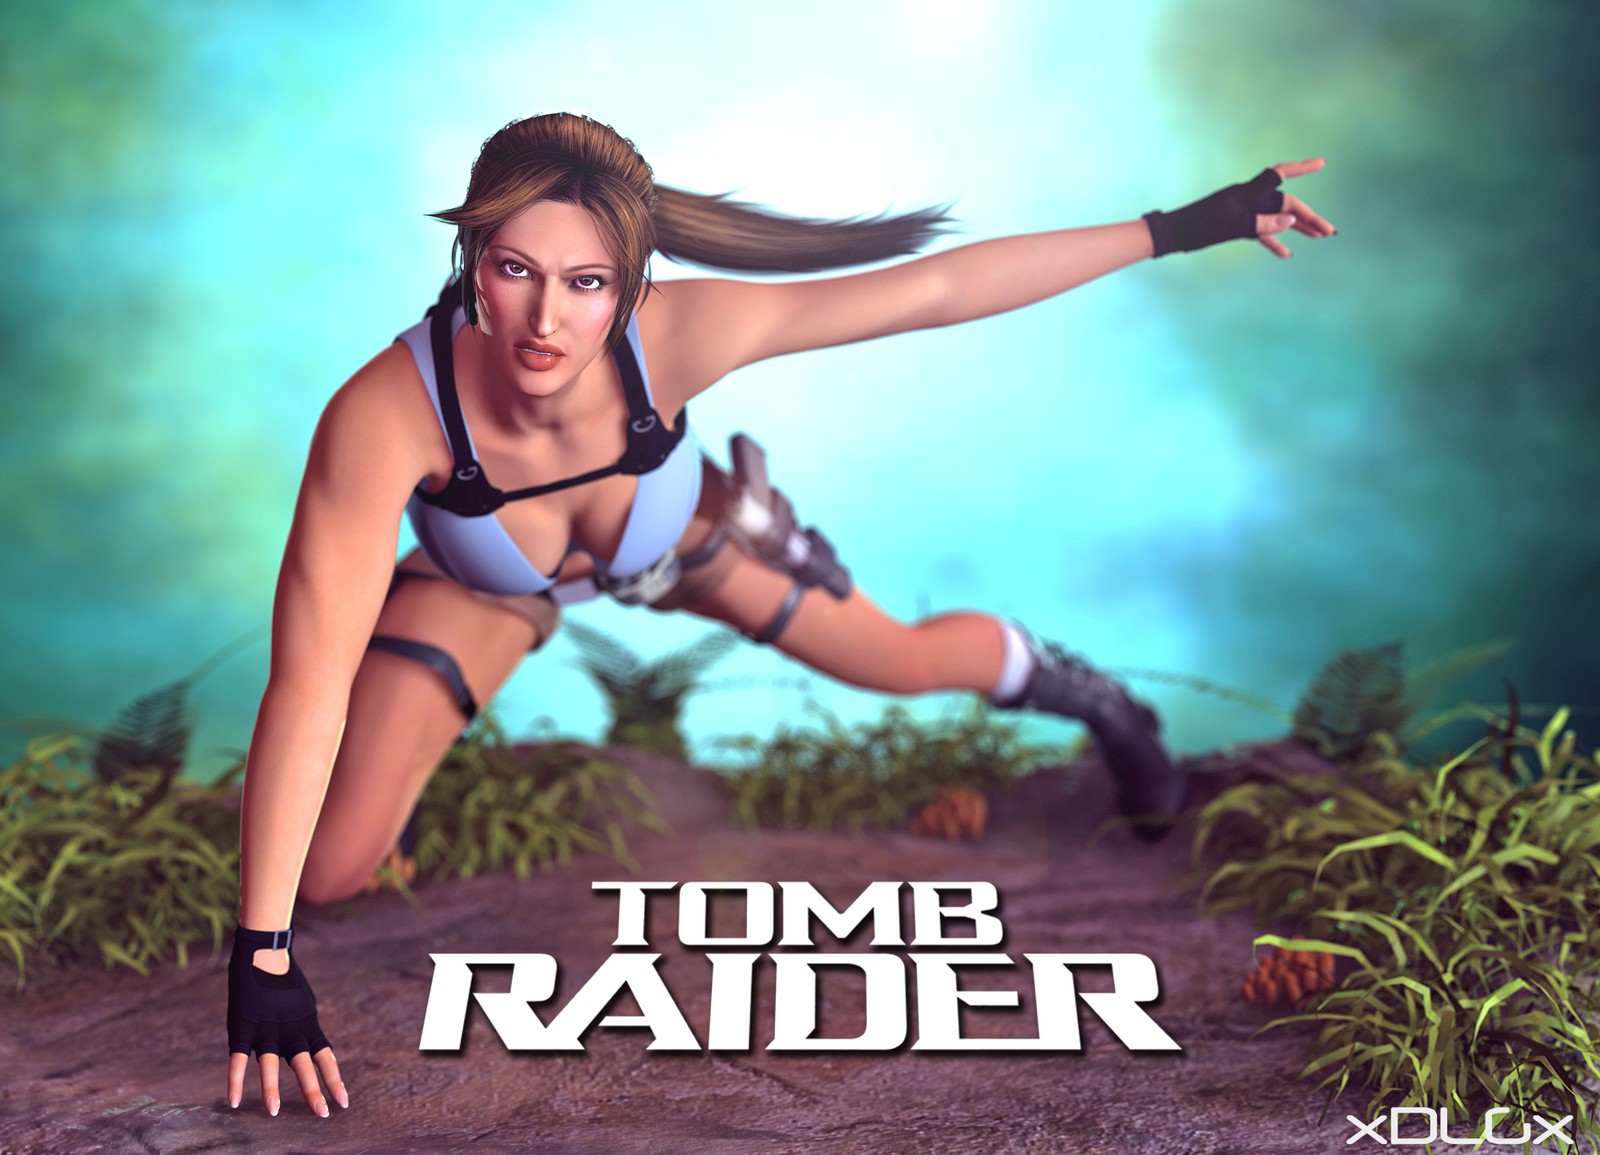 Porncraft of tomb raider adult movies